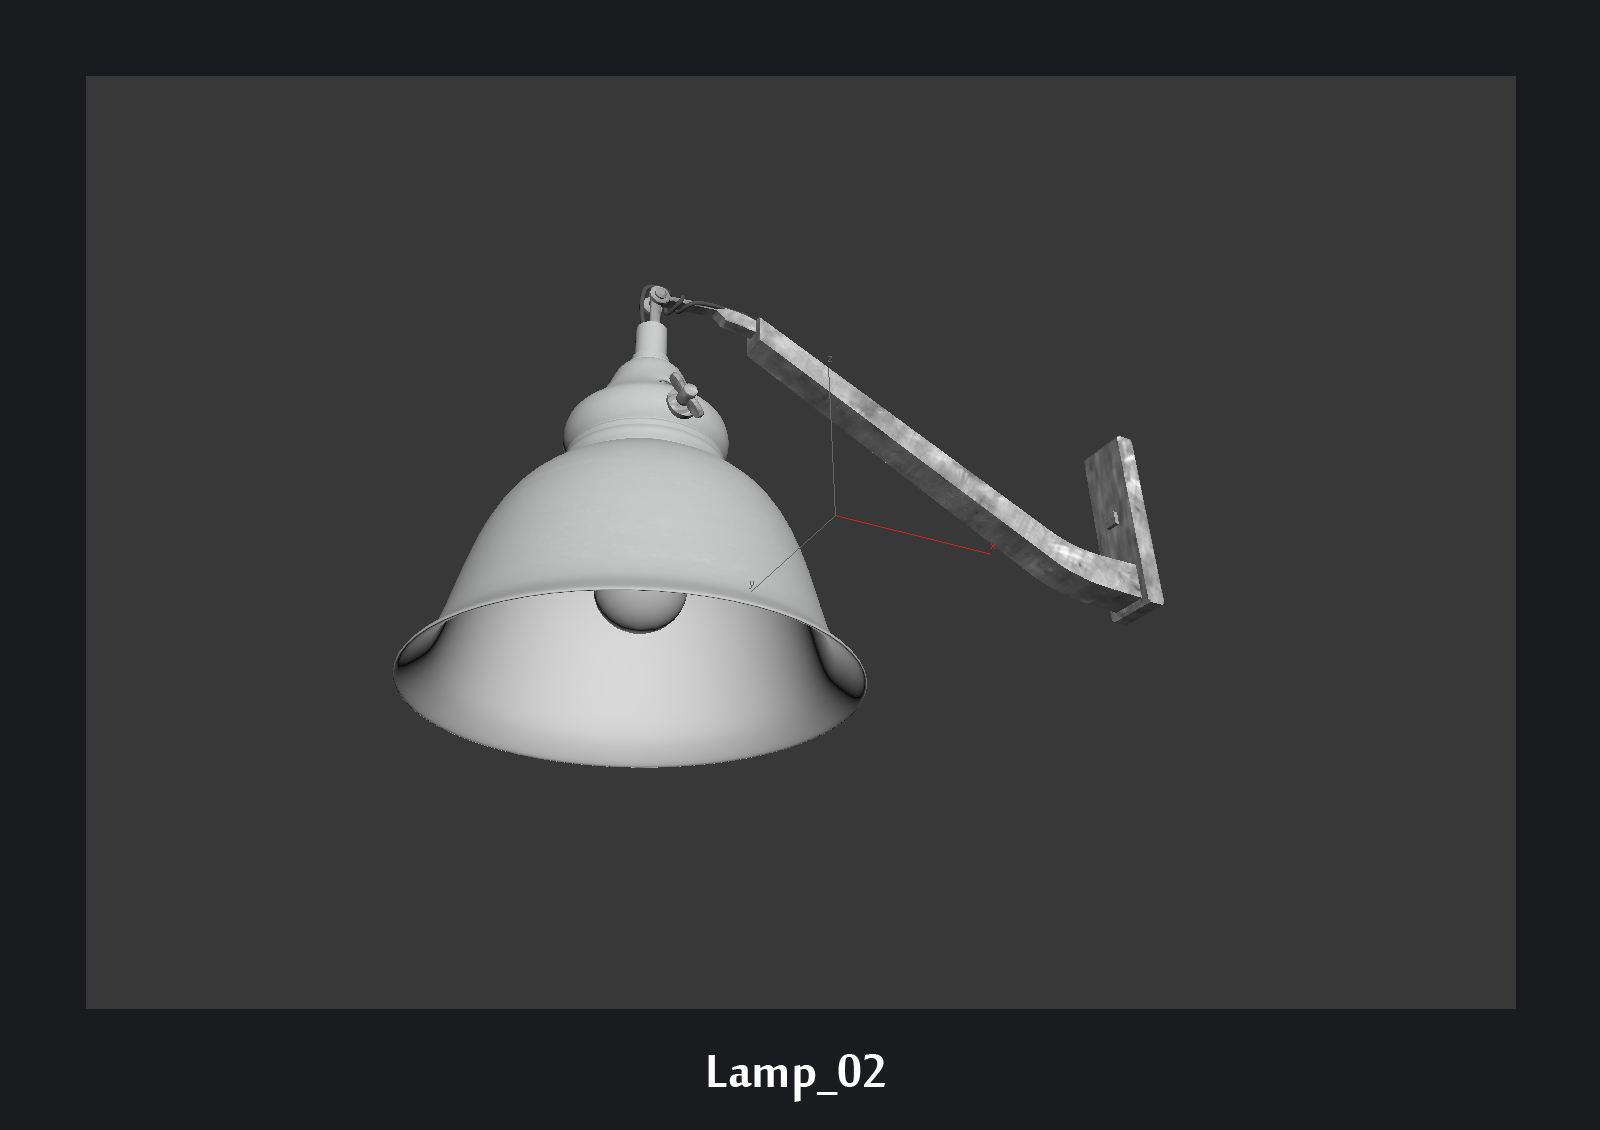 014_Lamp_02_evermotion_050.jpg